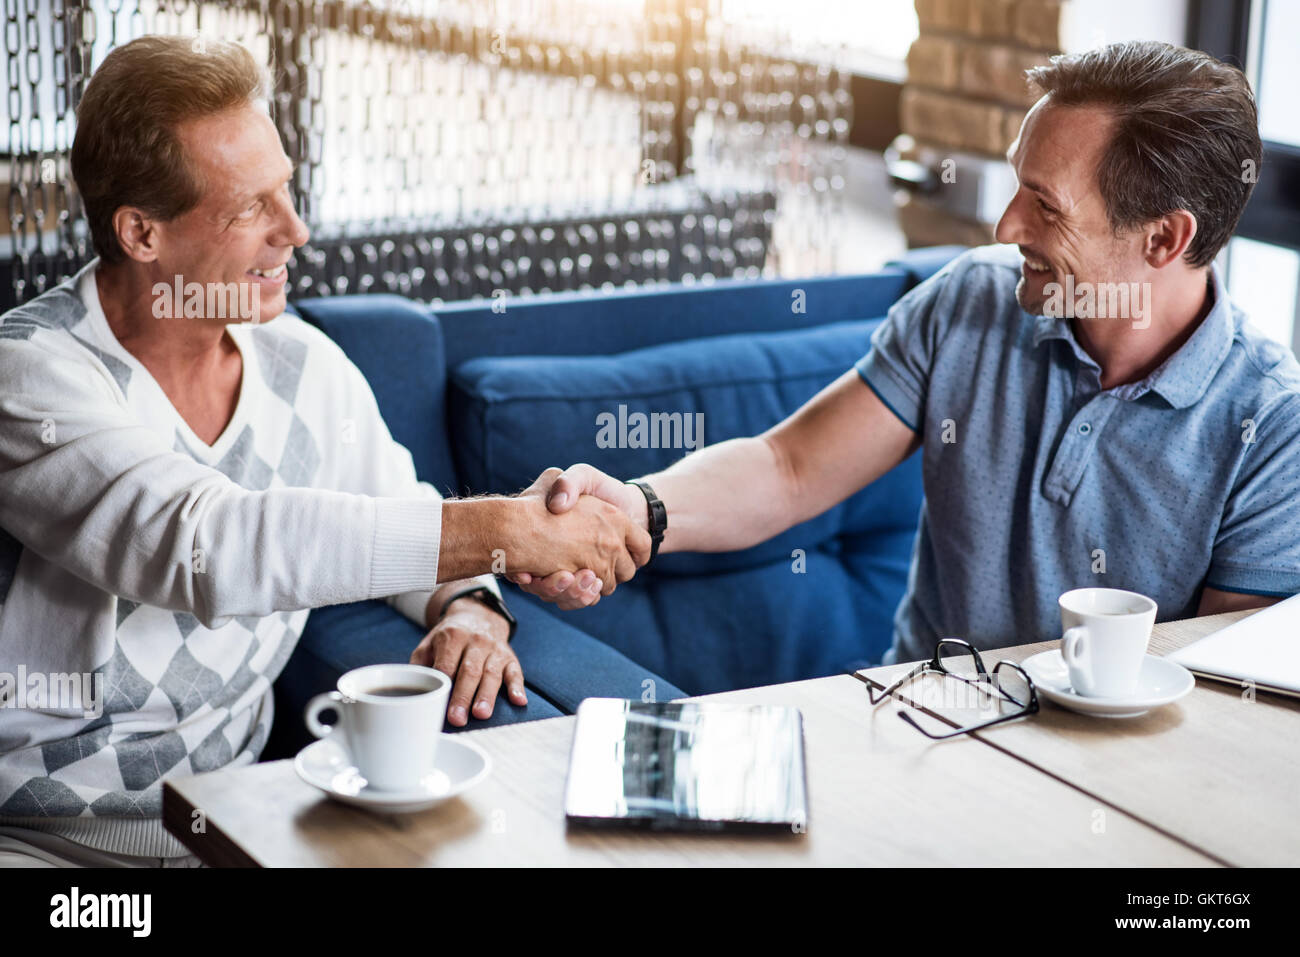 Two men working together - Stock Image